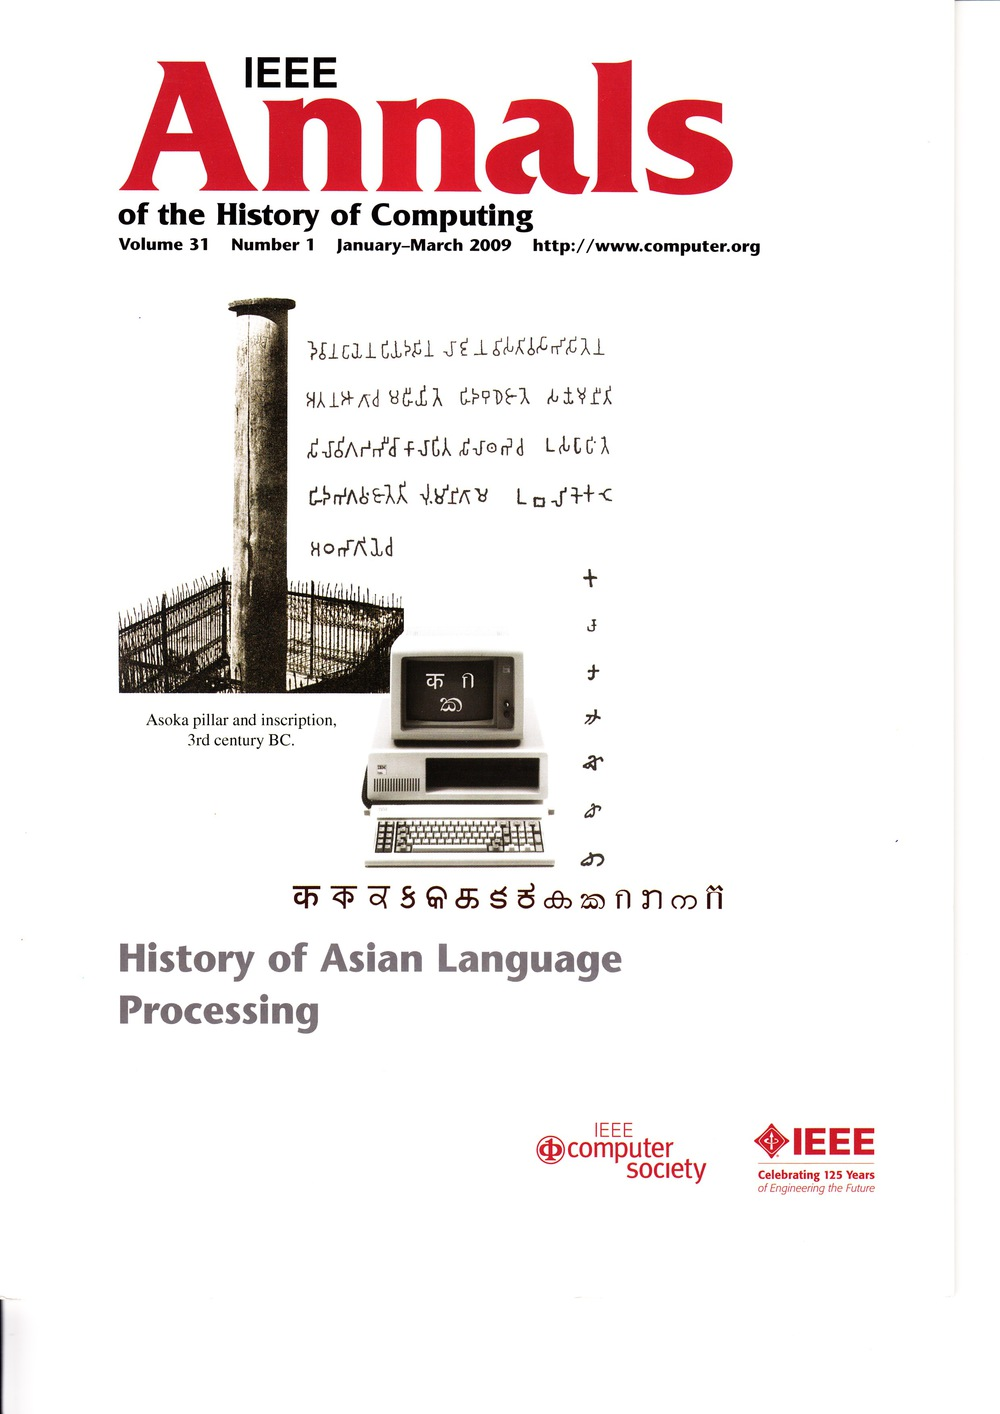 Scan of Document: IEEE Annals of the History of Computing - January-March 2009